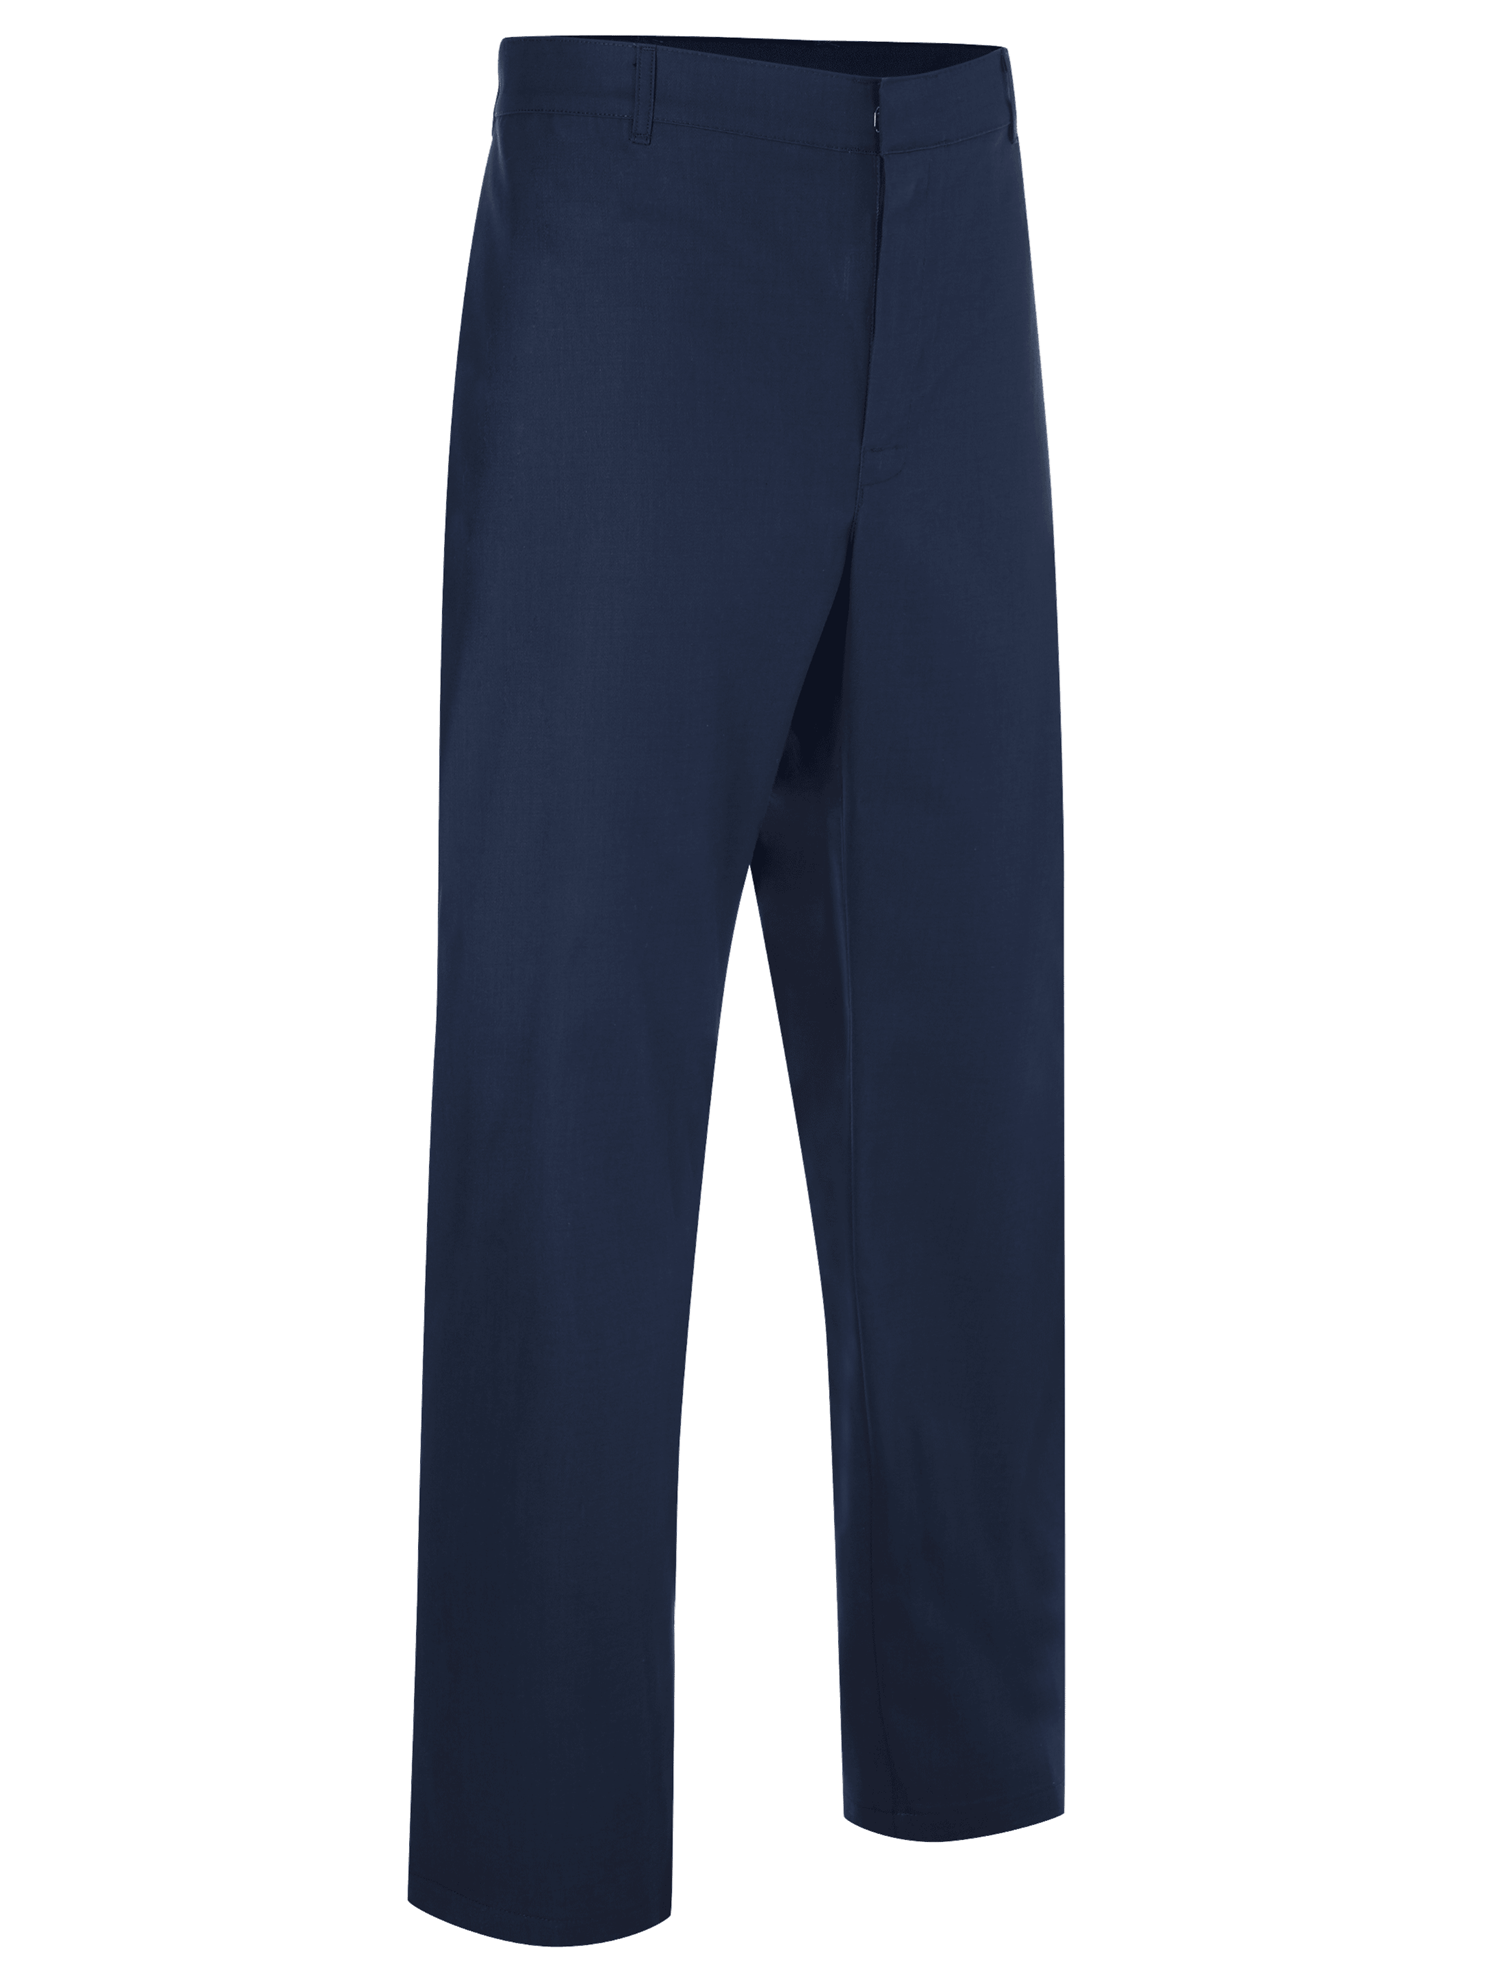 Picture of FR Anti-Static Trouser - Navy